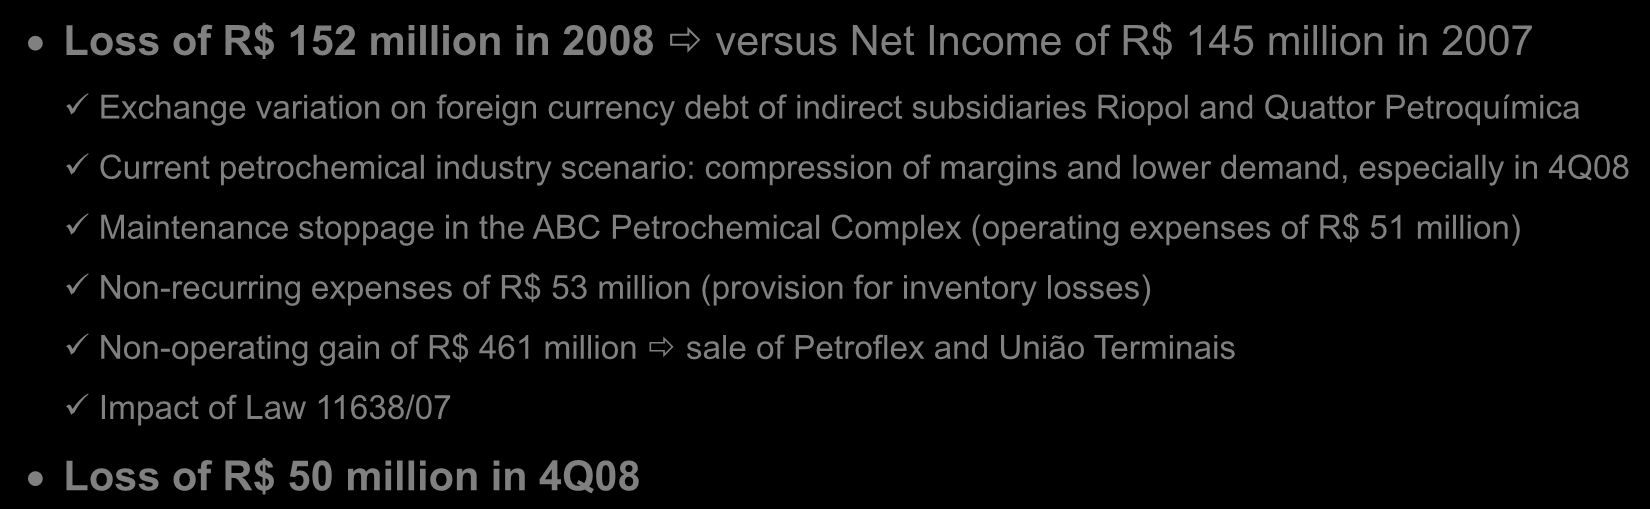 Net Income Loss of R$ 152 million in 2008 versus Net Income of R$ 145 million in 2007 Exchange variation on foreign currency debt of indirect subsidiaries Riopol and Quattor Petroquímica Current